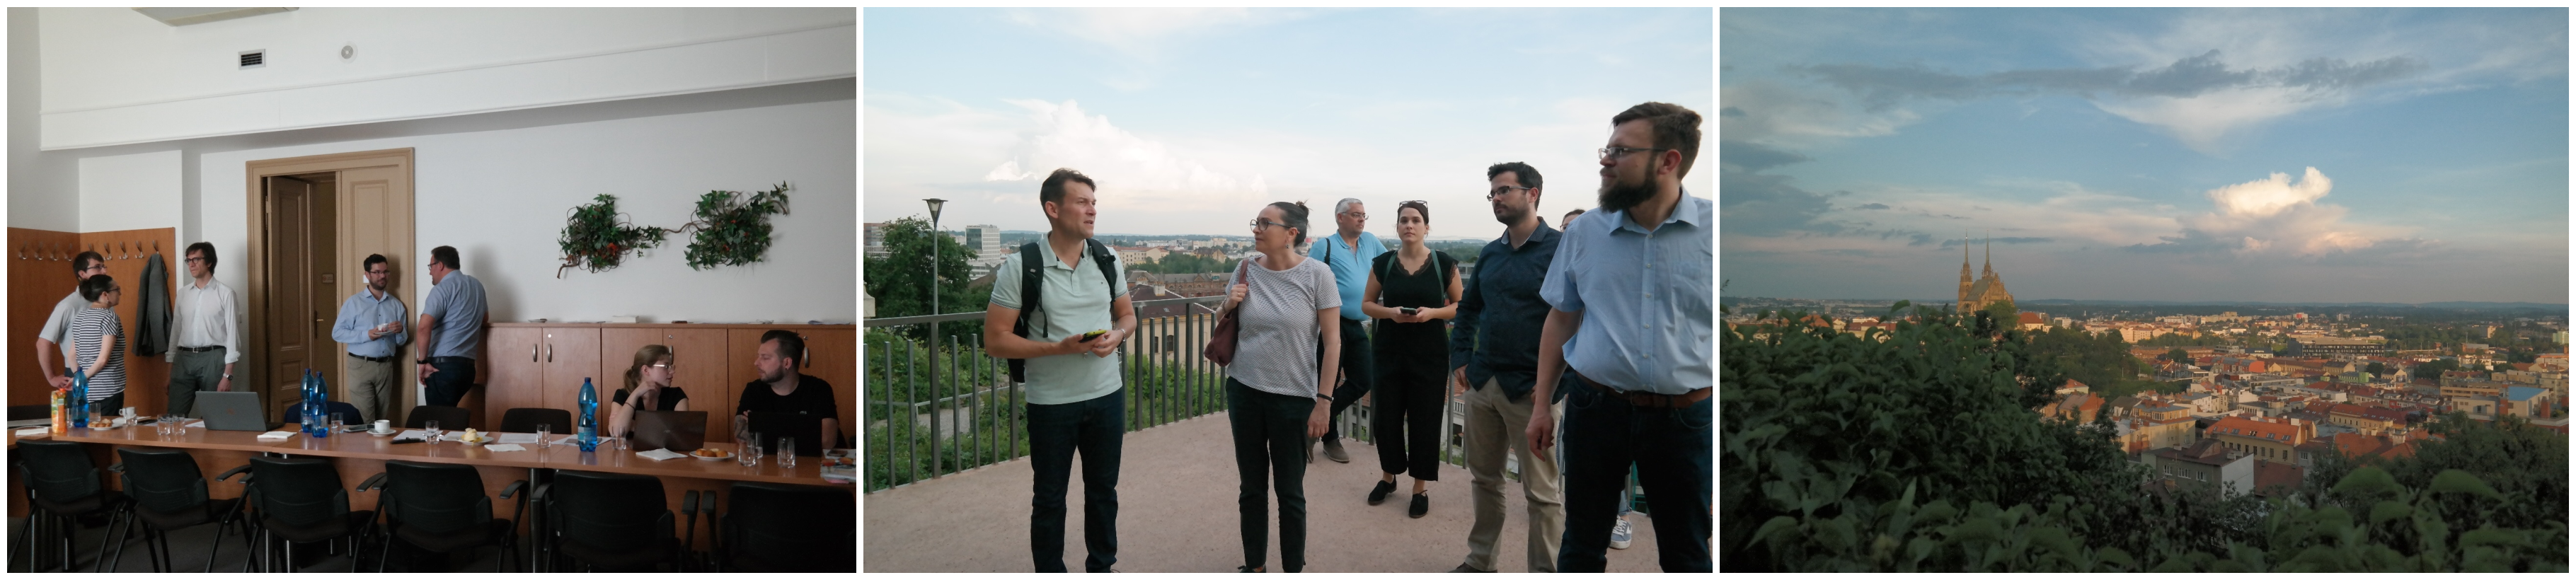 4th partner meeting and guided tour through Brno